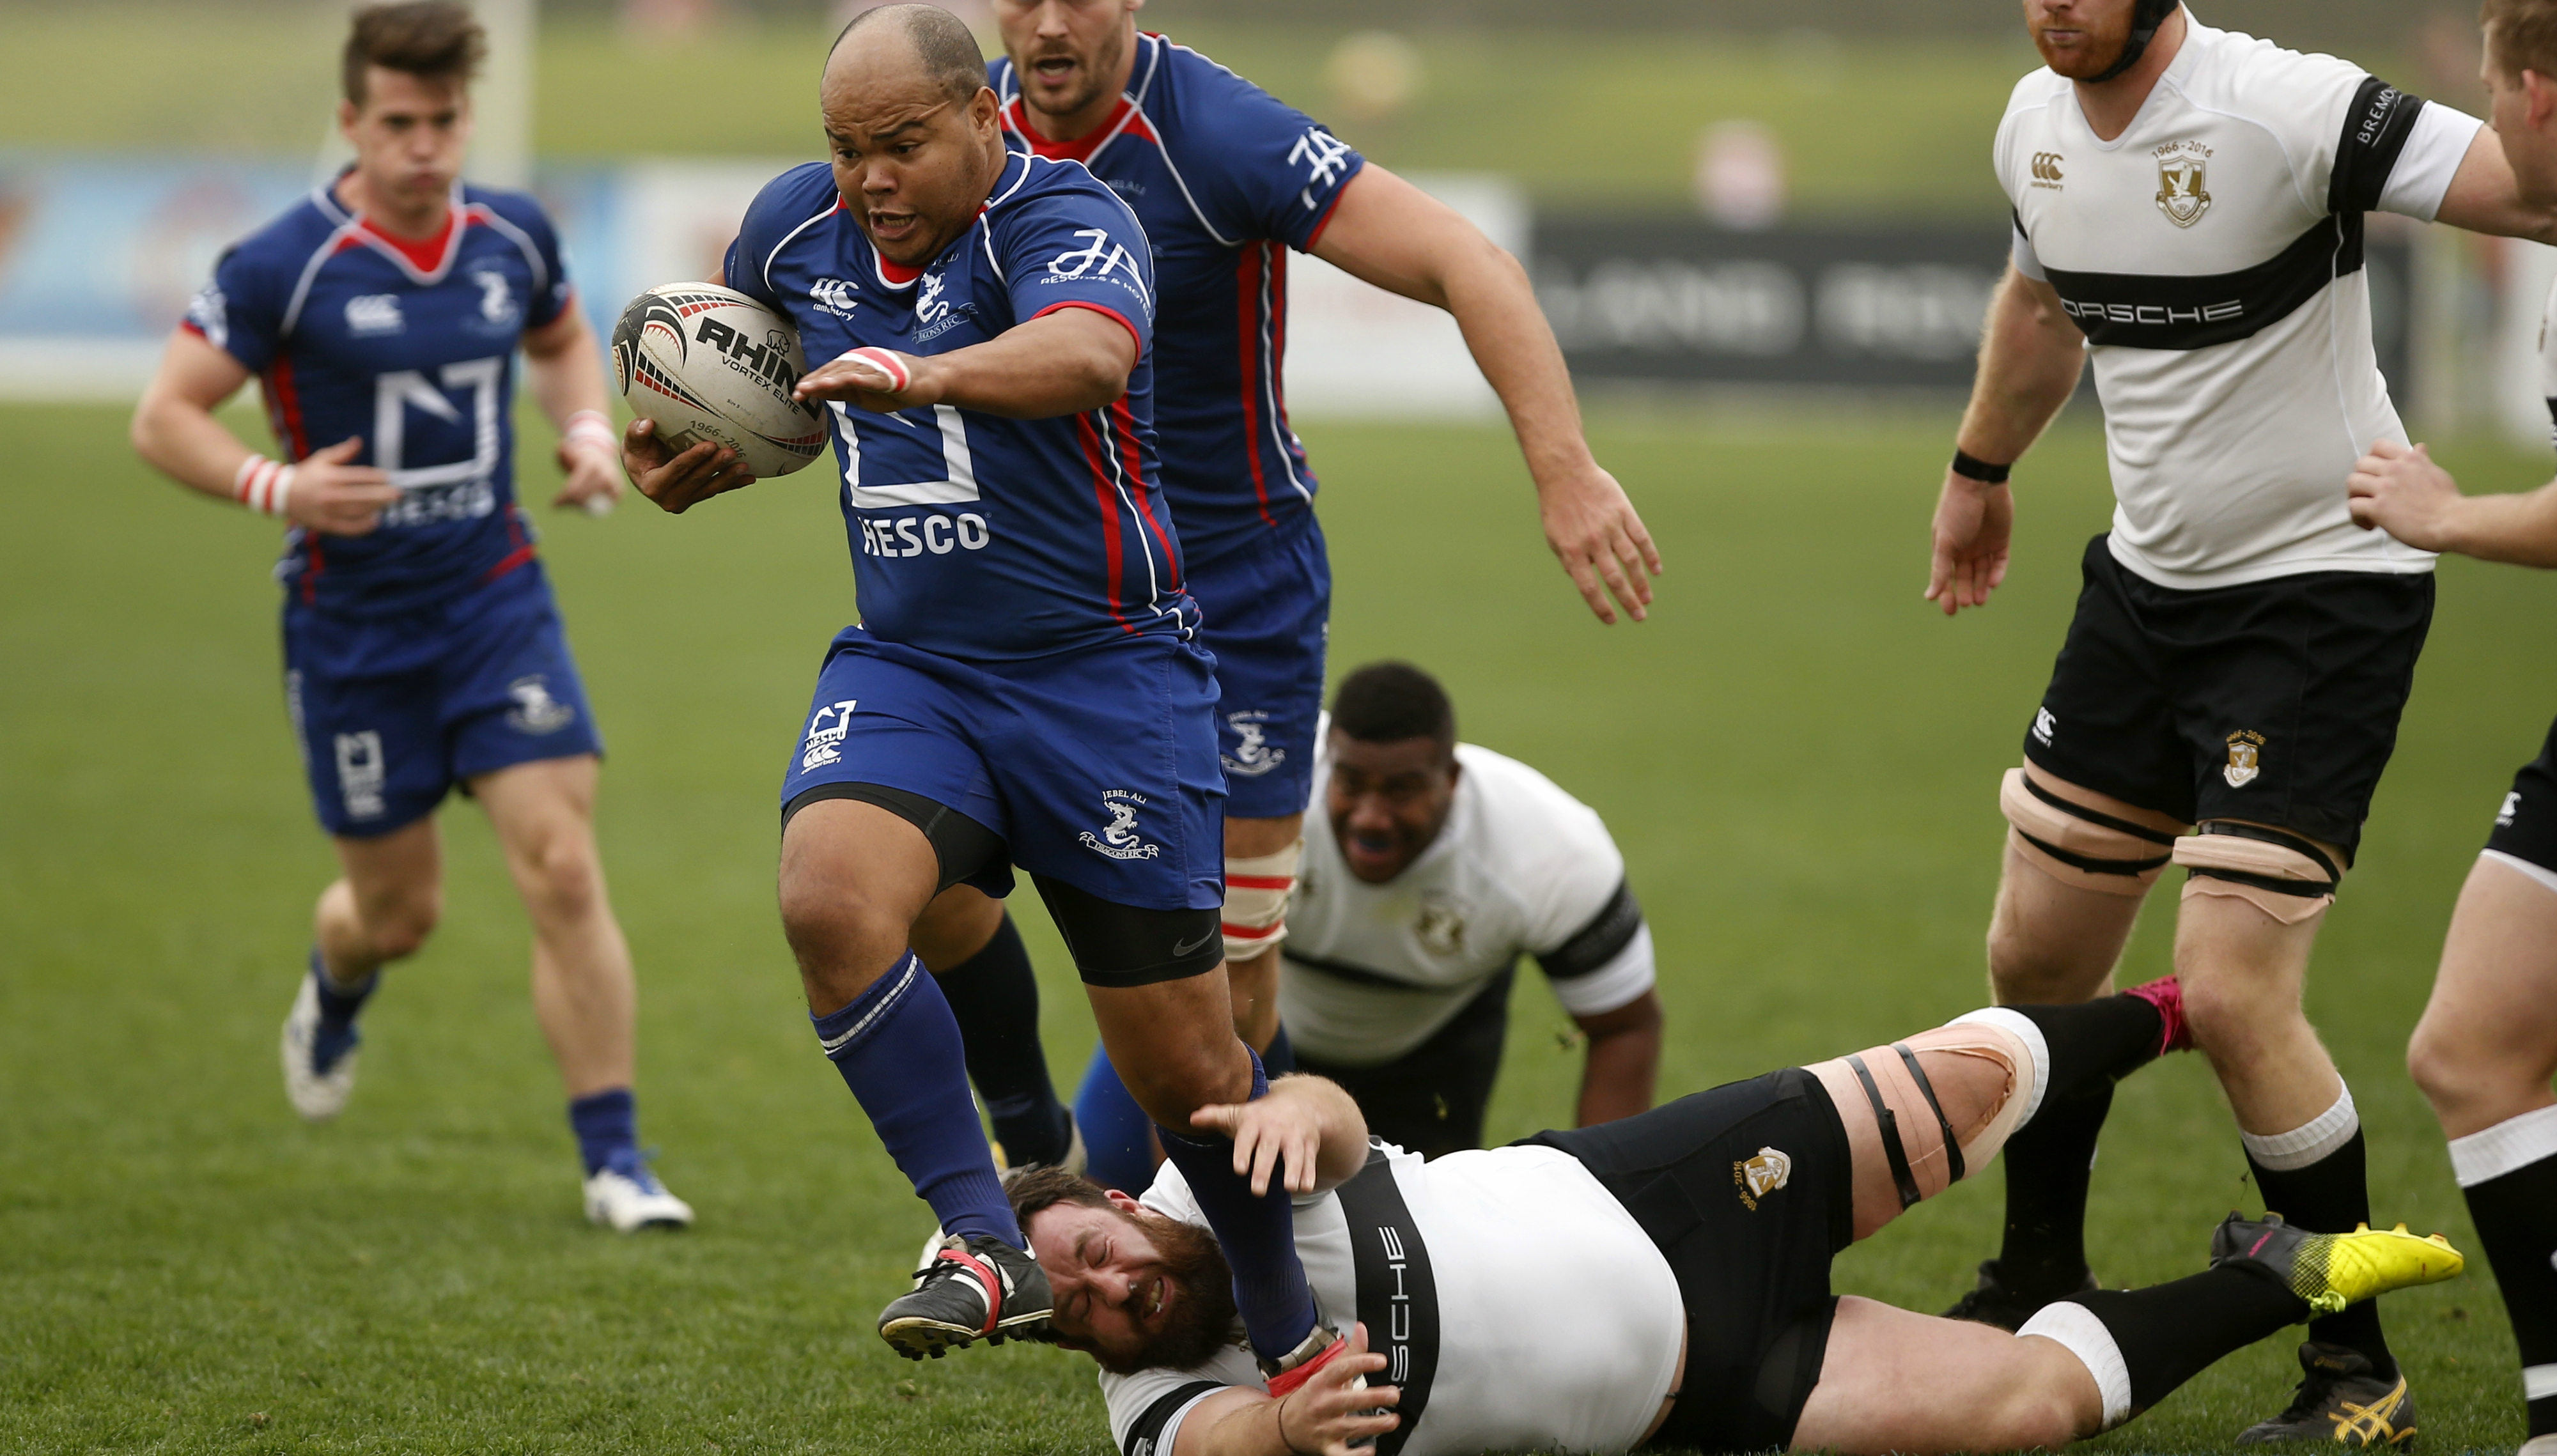 Gio Fourie, now of Exiles, in action against them for Dragons last season